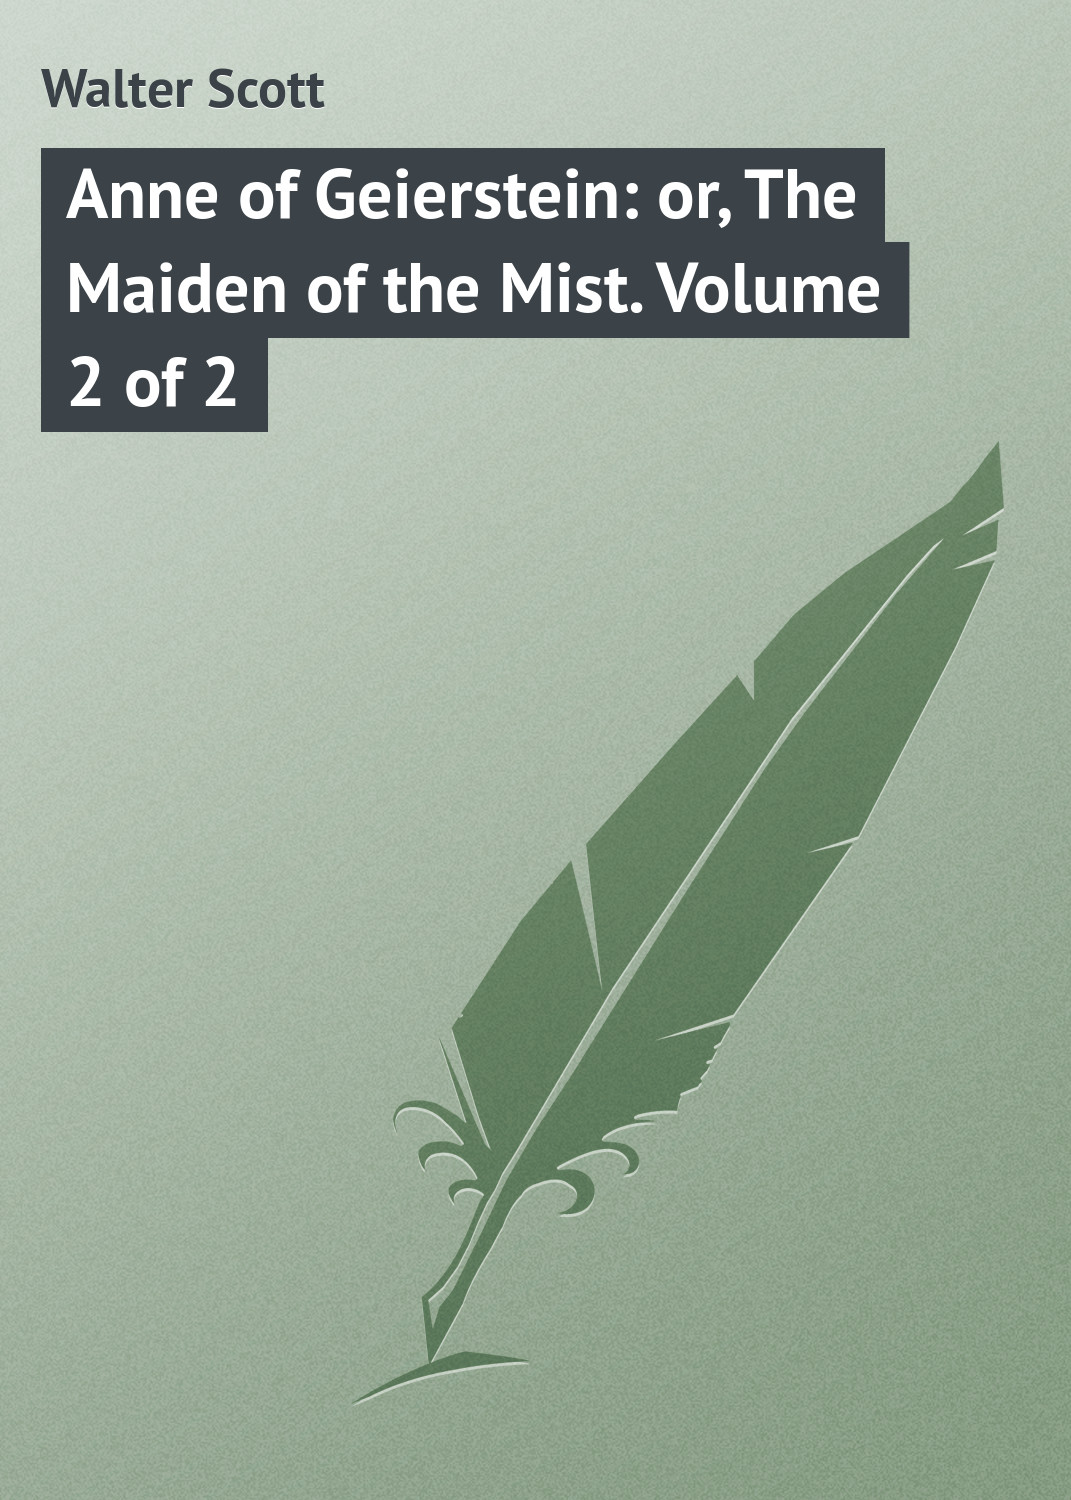 Walter Scott Anne of Geierstein: or, The Maiden of the Mist. Volume 2 of 2 walter scott the history of schotland vol 2